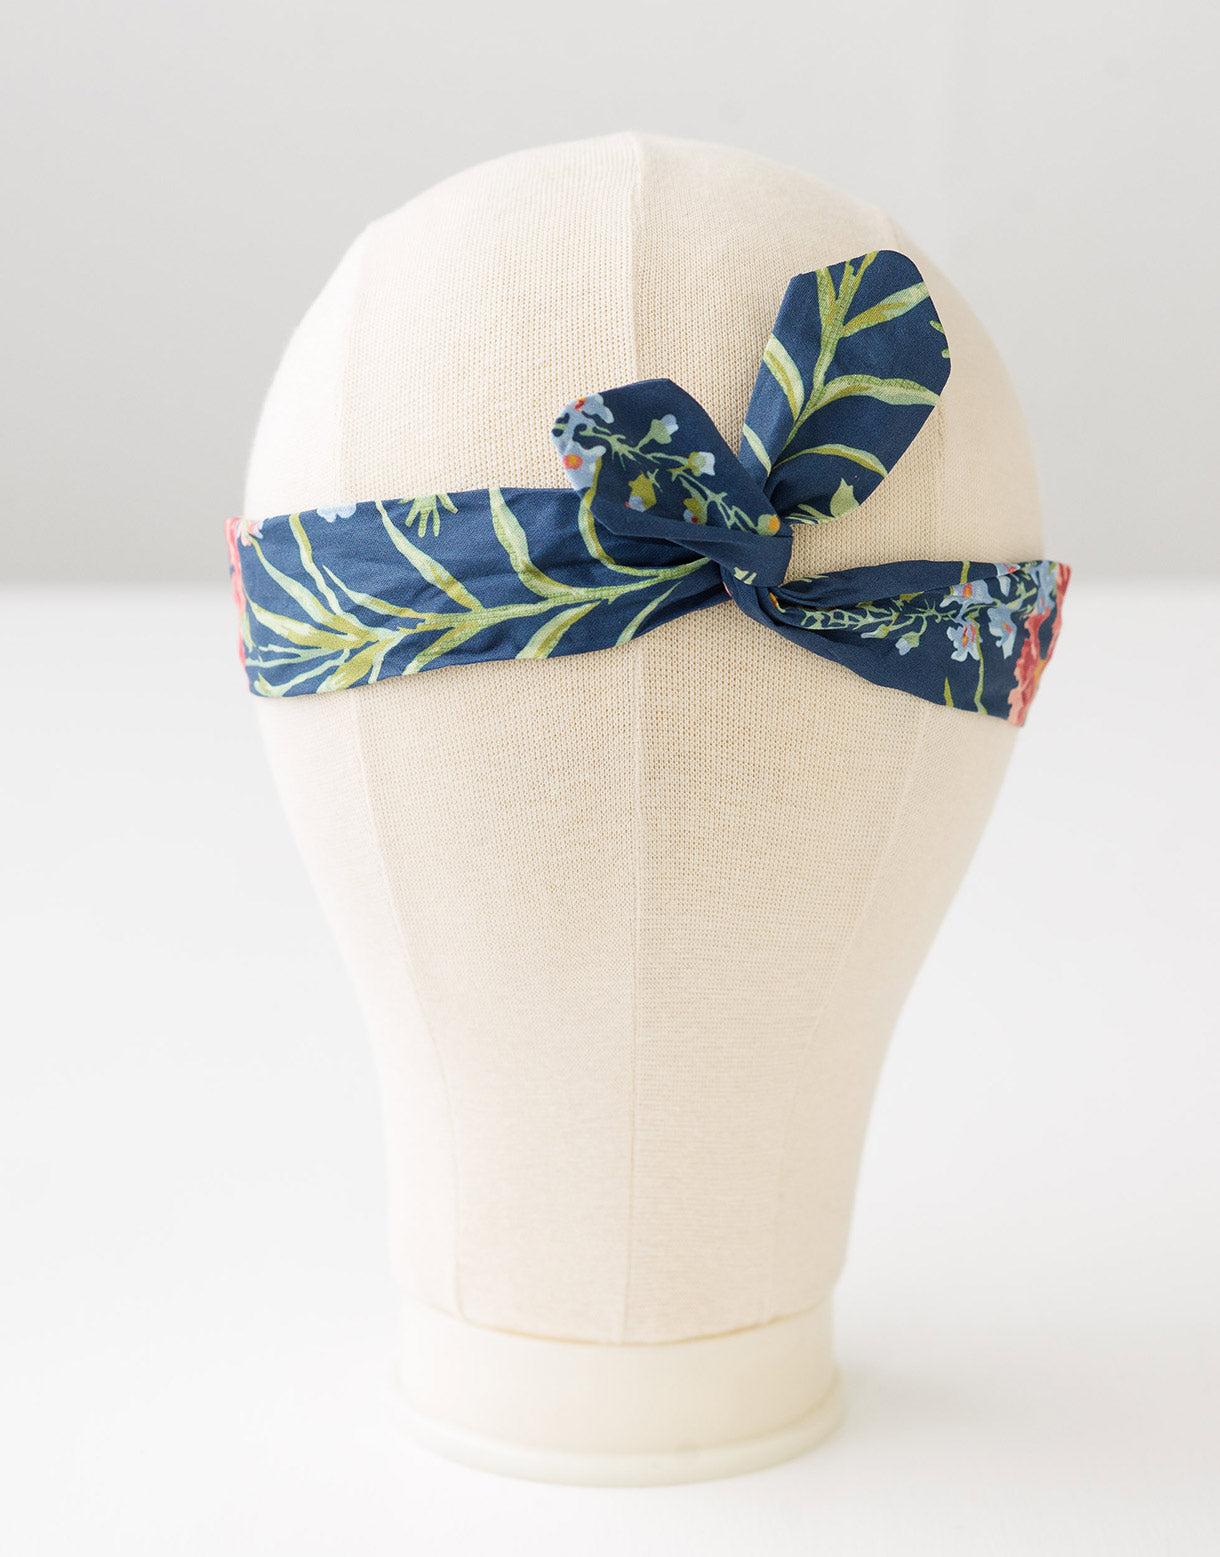 Hair wrap in Delphinium